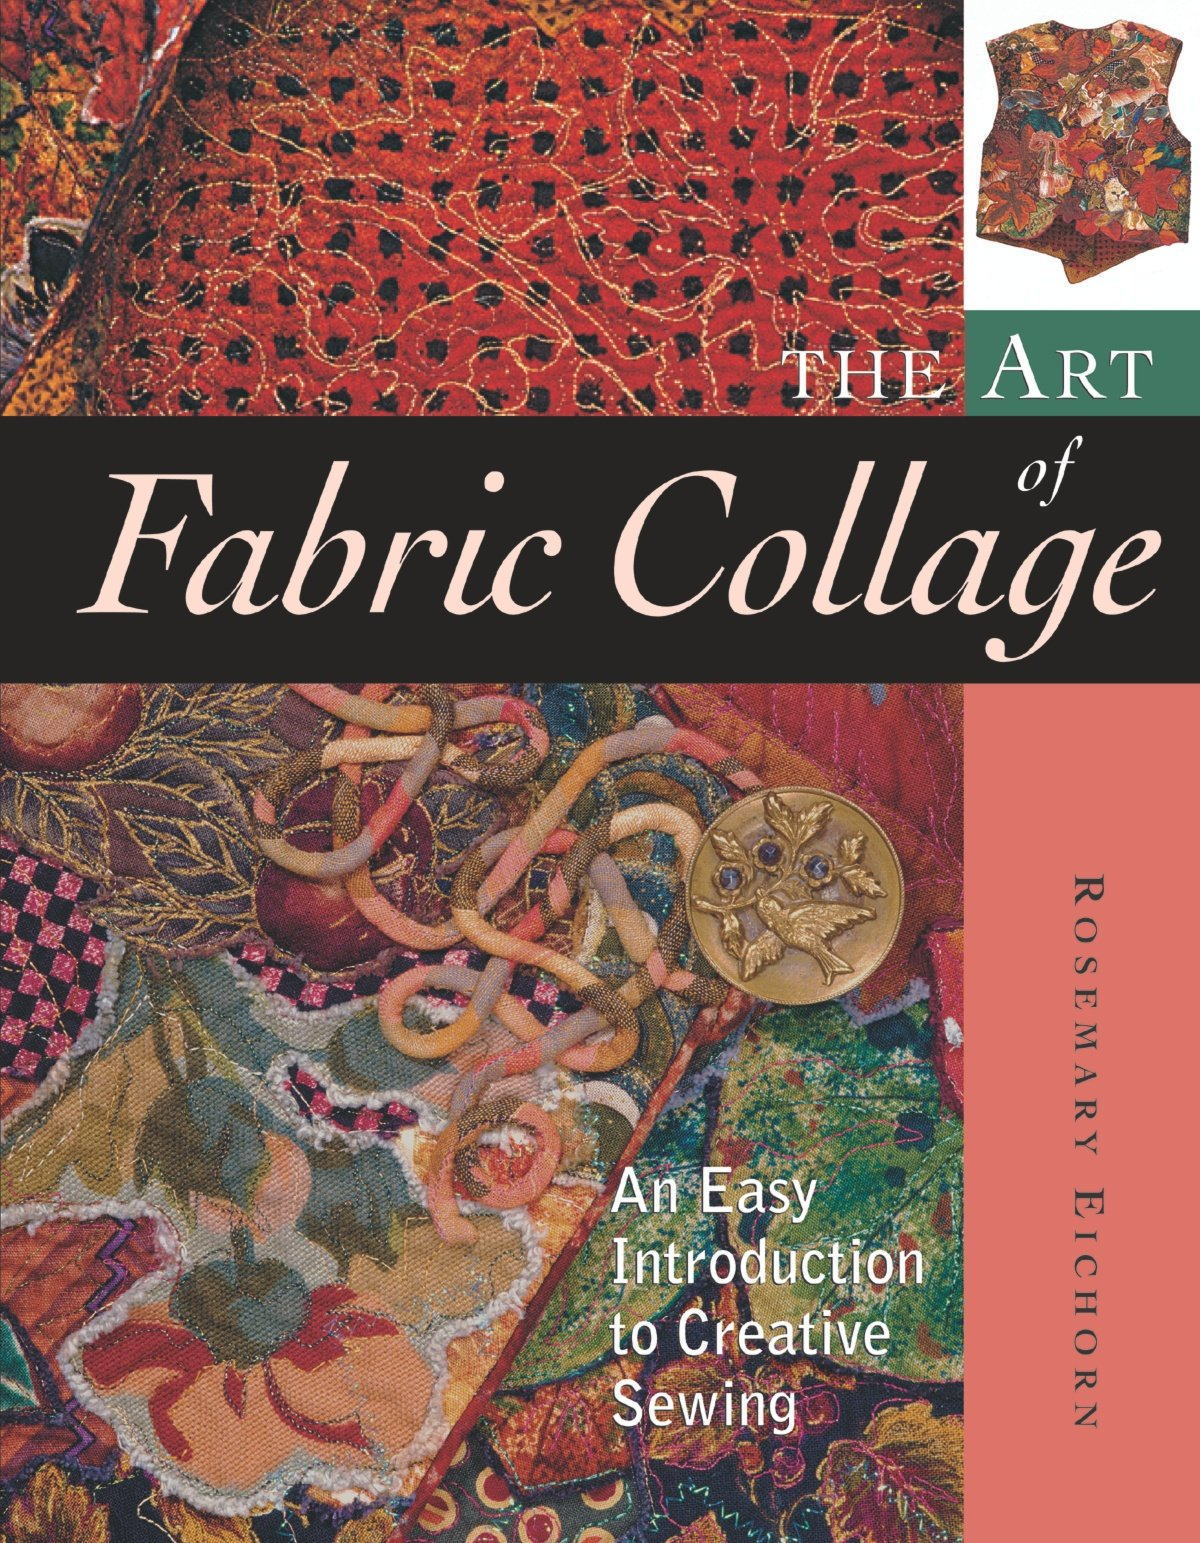 The Art of Fabric Collage: An Easy Introduction to Creative Sewing pdf epub